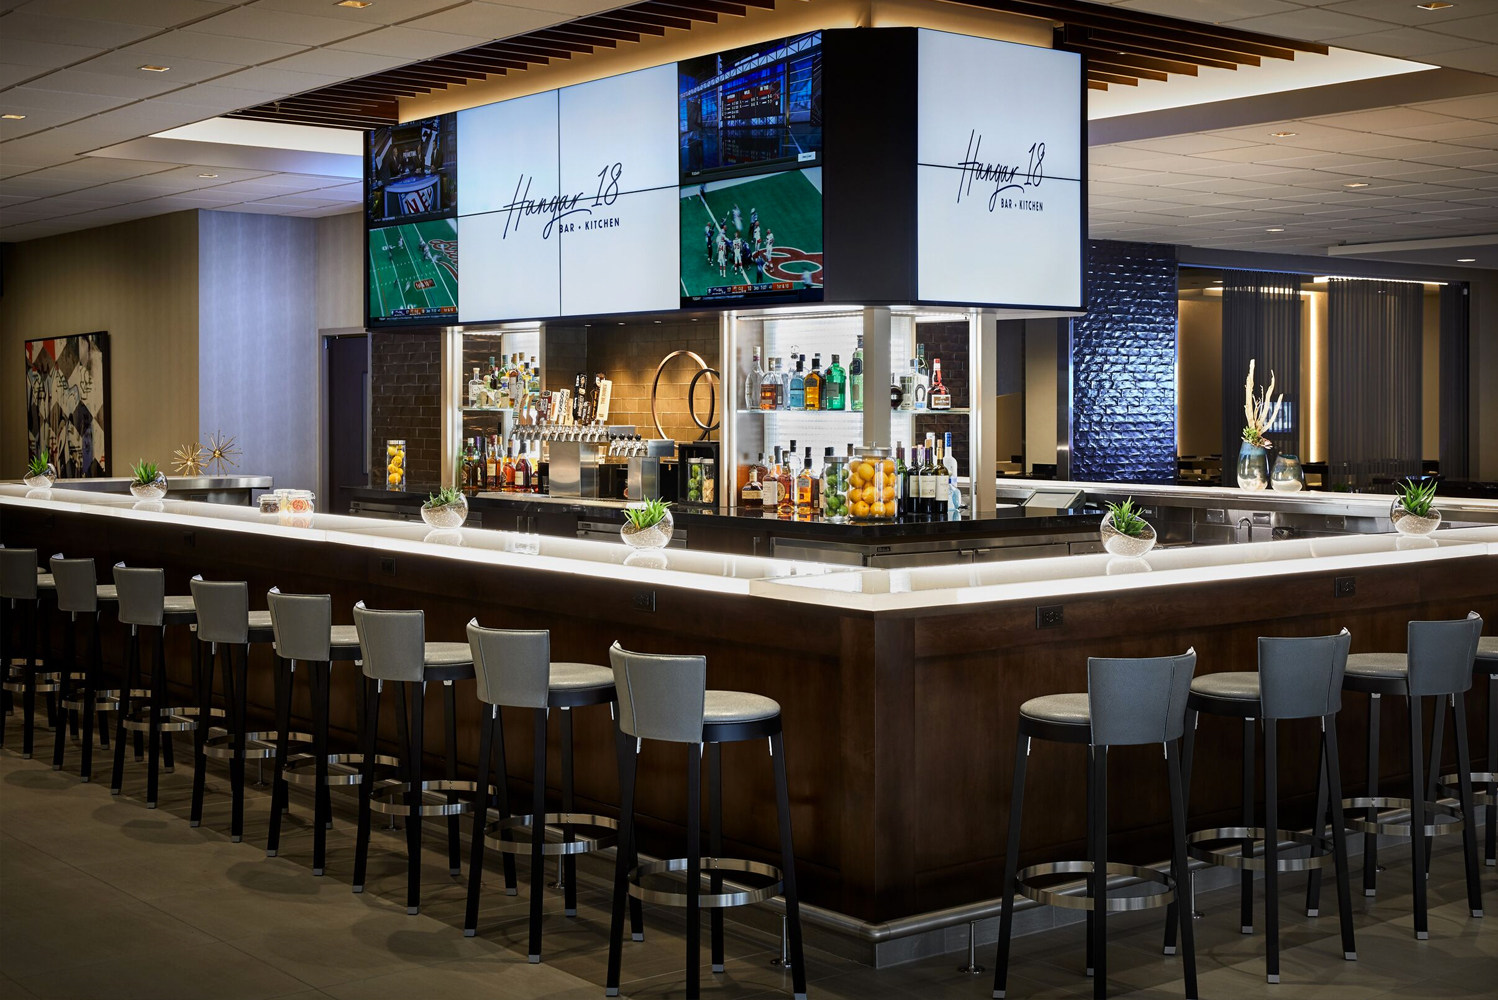 LAX Marriott is located near Downtown Los Angeles, Manhattan Beach, and various restaurants, shops and museums.